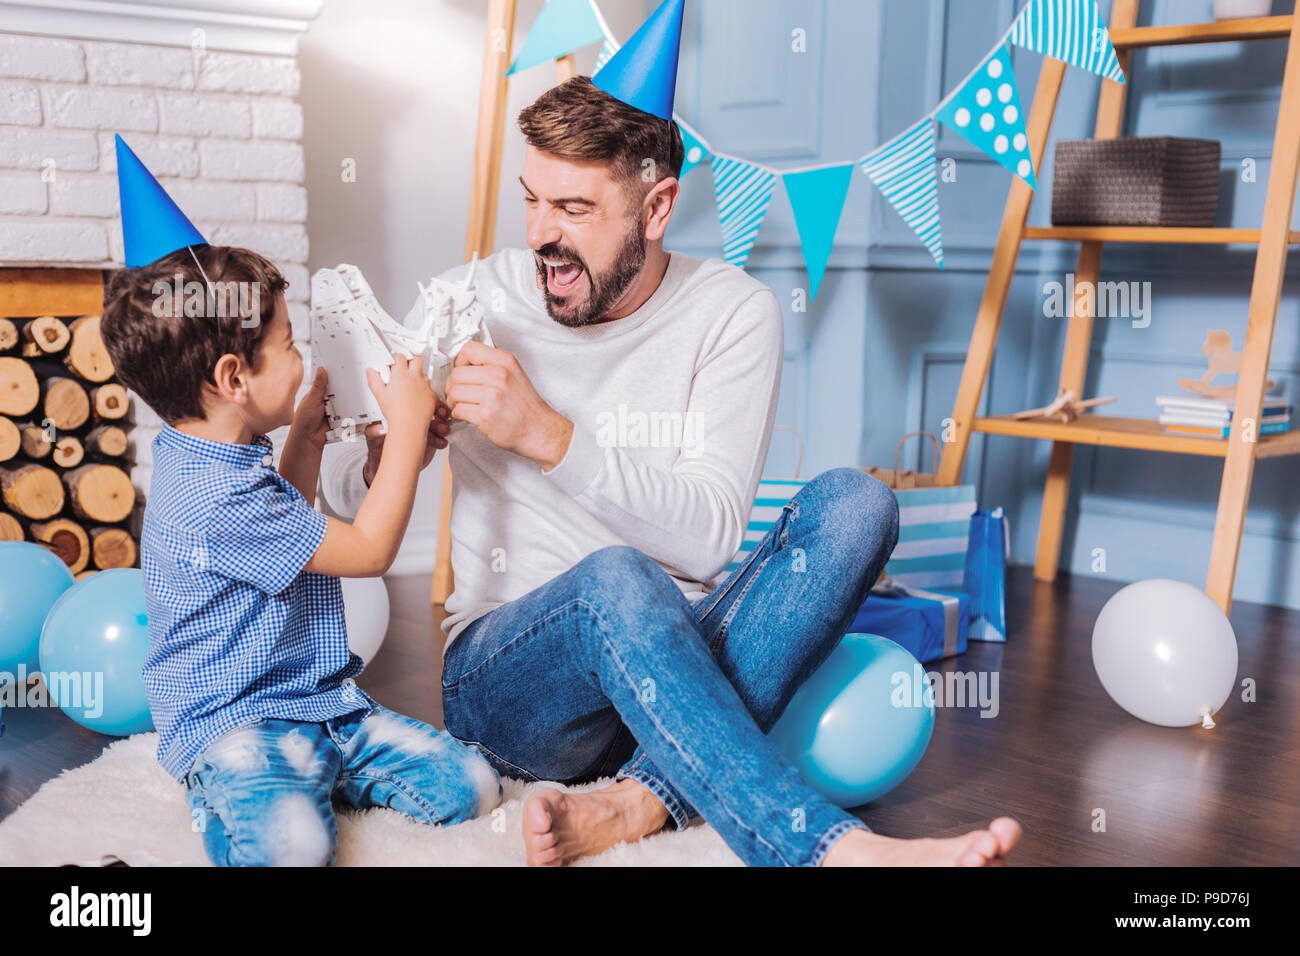 Cheerful bearded male person playing with son Stock Photo